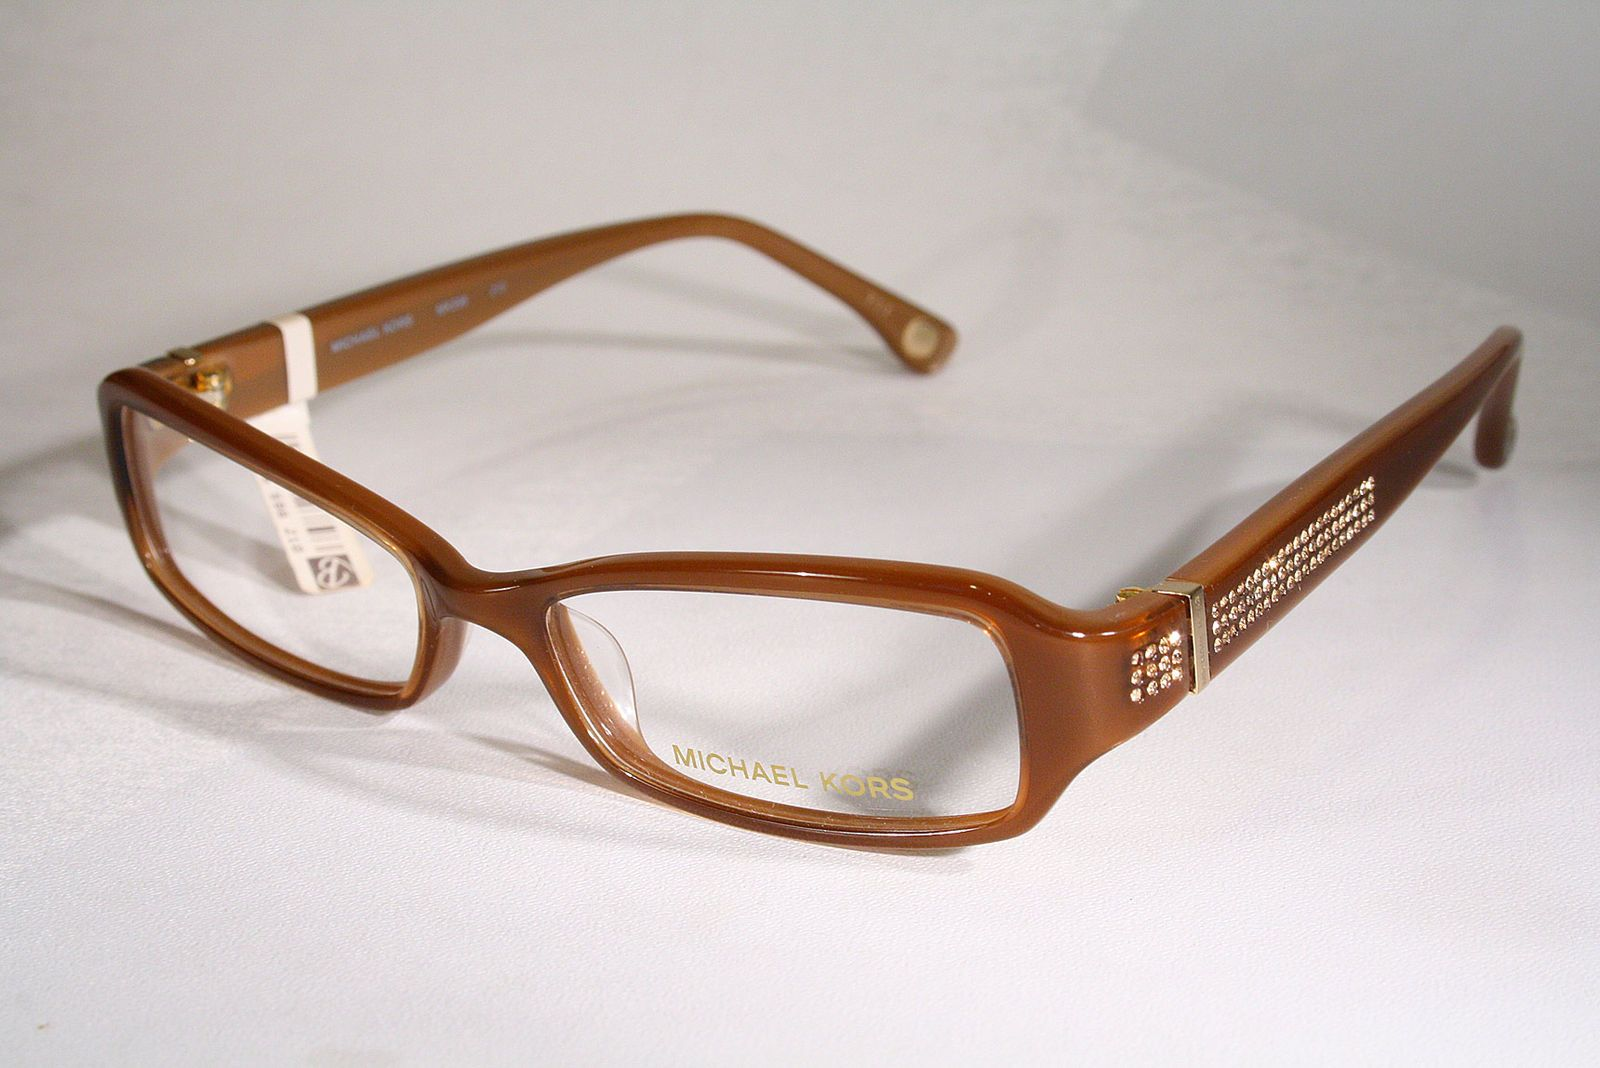 f6f564861466 New MICHAEL KORS 598 Women s Taffy Brown w  Rhinestones Eyeglasses Frames  Small